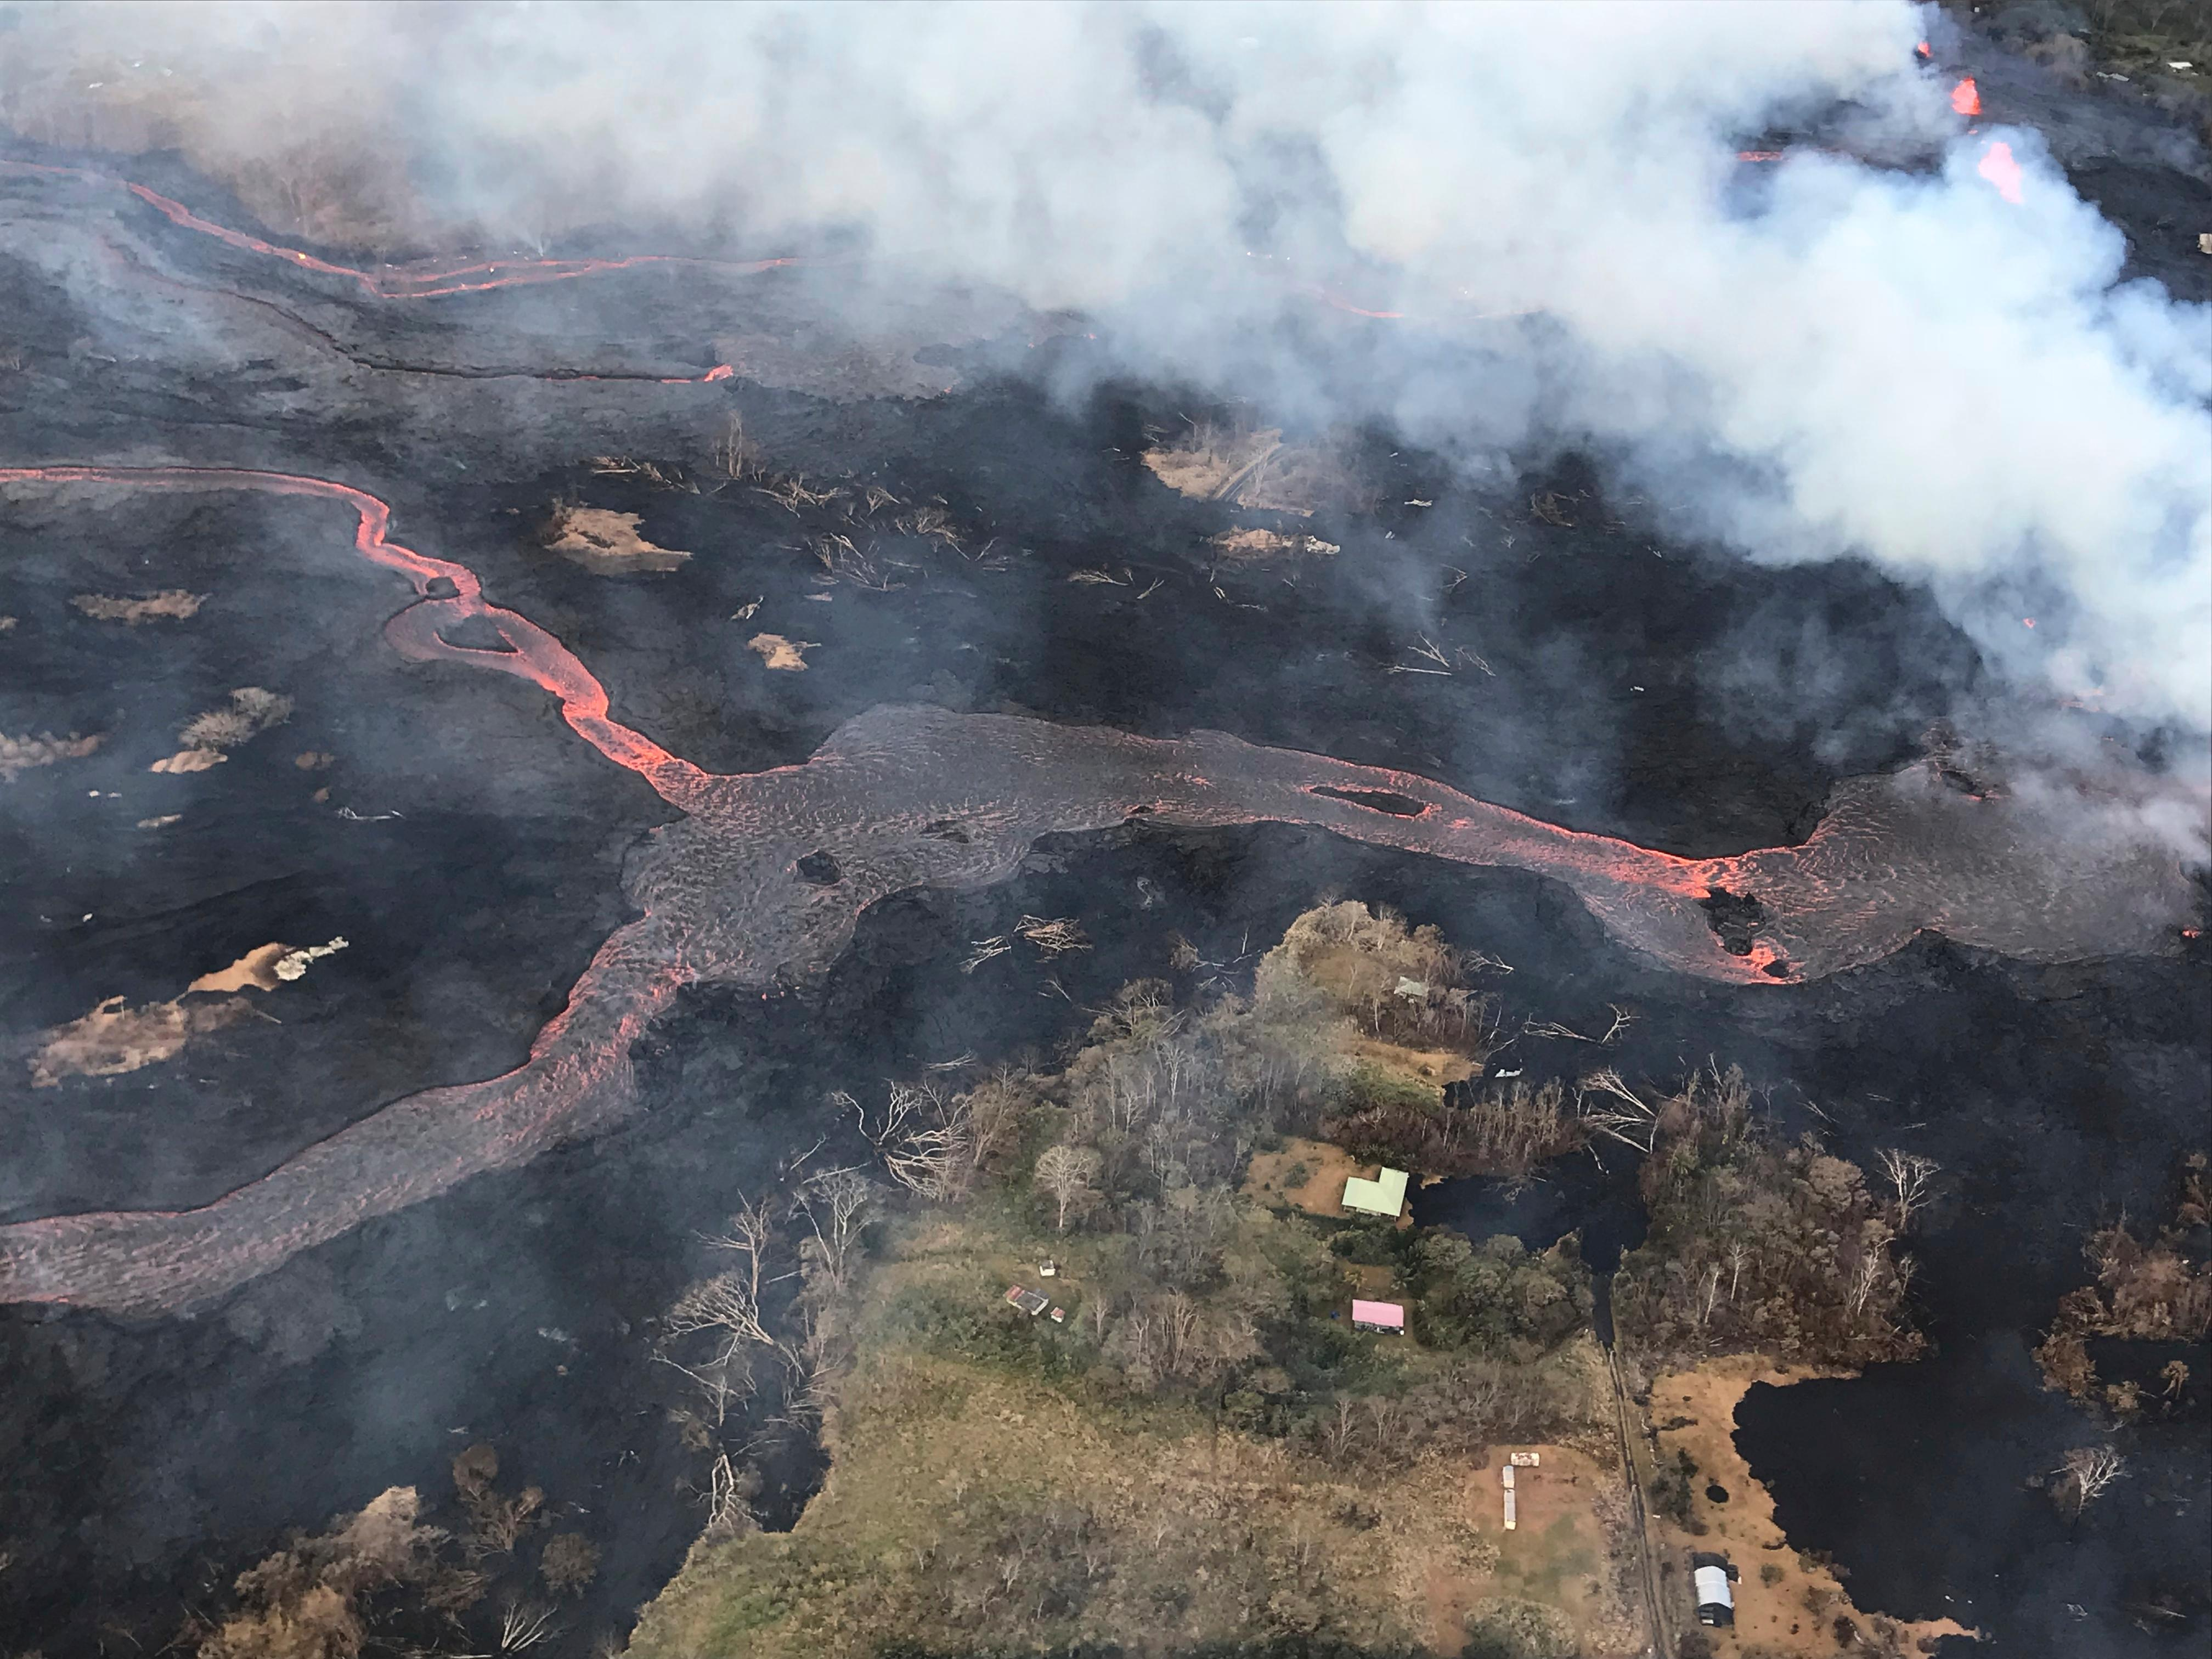 This Wednesday, May 23, 2018 photo shows a helicopter overflight of K?lauea Volcano's lower East Rift Zone near Pahoa, Hawaii.   The volcano produces methane when hot lava buries and burns plants and trees. Scientists say the methane can seep through cracks several feet away from the lava. ( U.S. Geological Survey via AP)